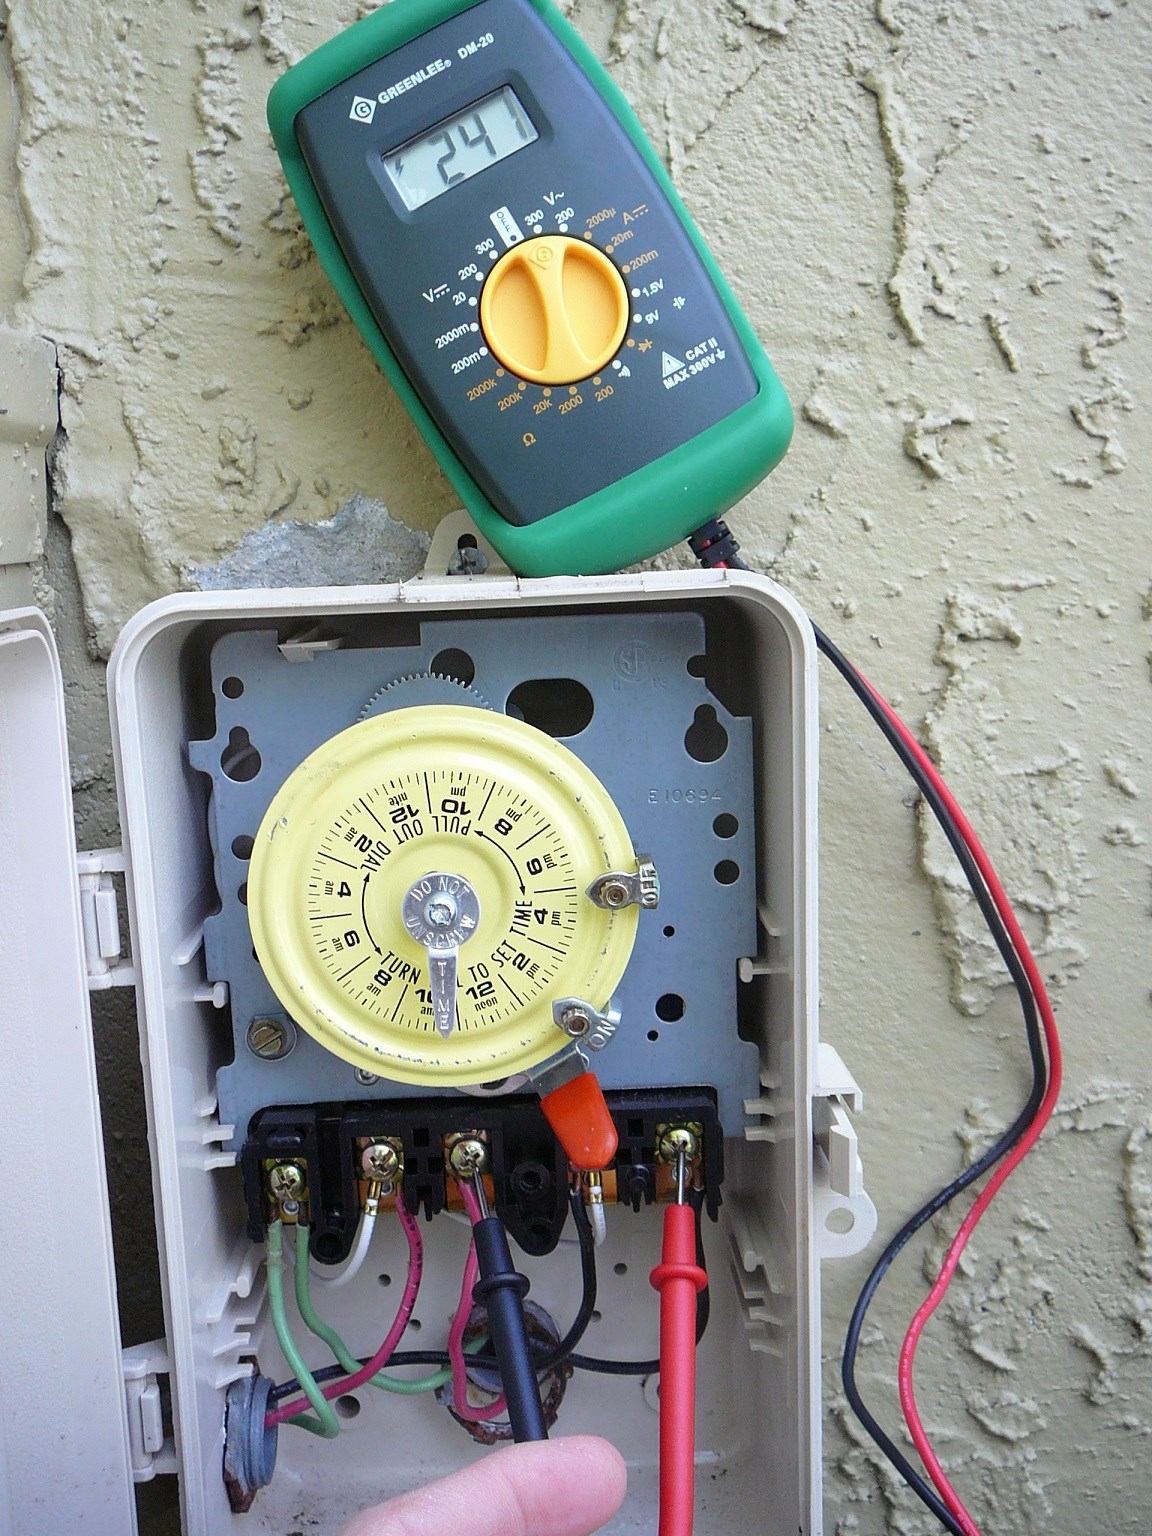 How To Use A Multimeter Test Pool Pump Motor Voltage Youtube Wiring Hot Tub If You Are Installing New Or Have Troubleshoot Failing Will Generally Want Measure The Motors Supply